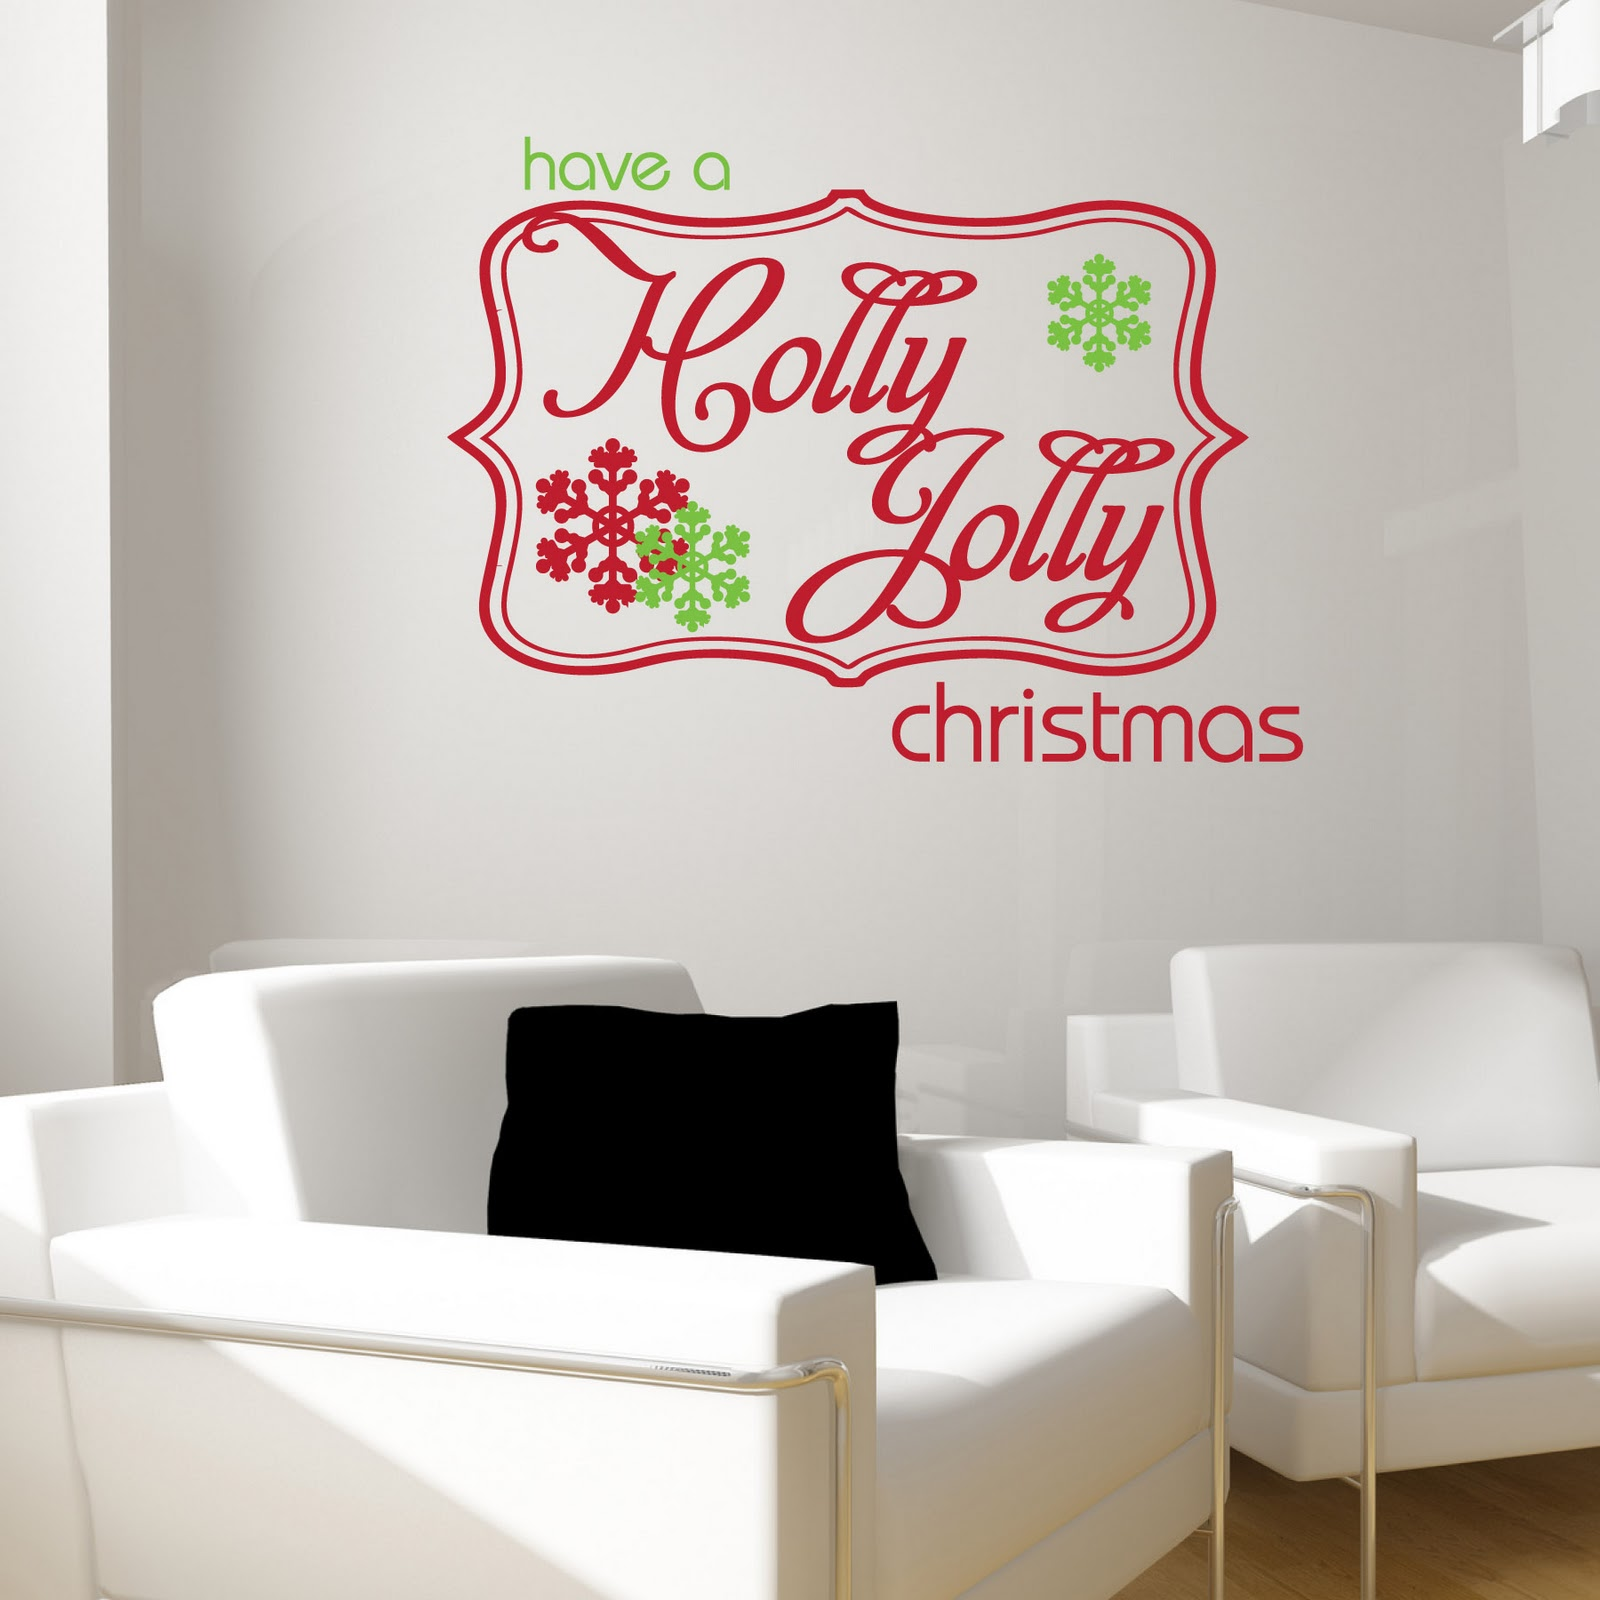 Janey mac christmas wall decals holly jolly